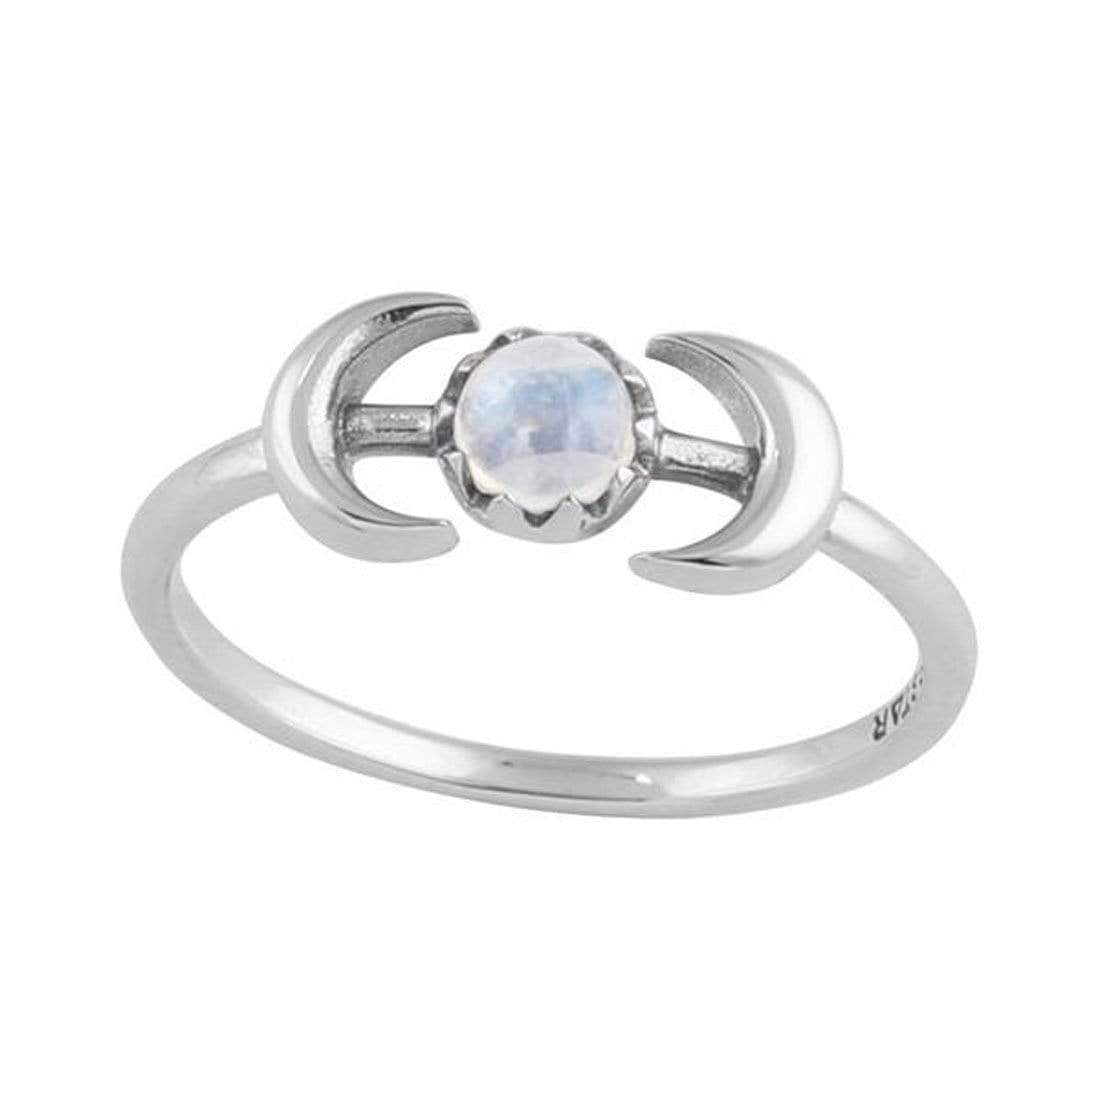 Sterling Silver Encapsulating Moons Rainbow Moonstone Ring